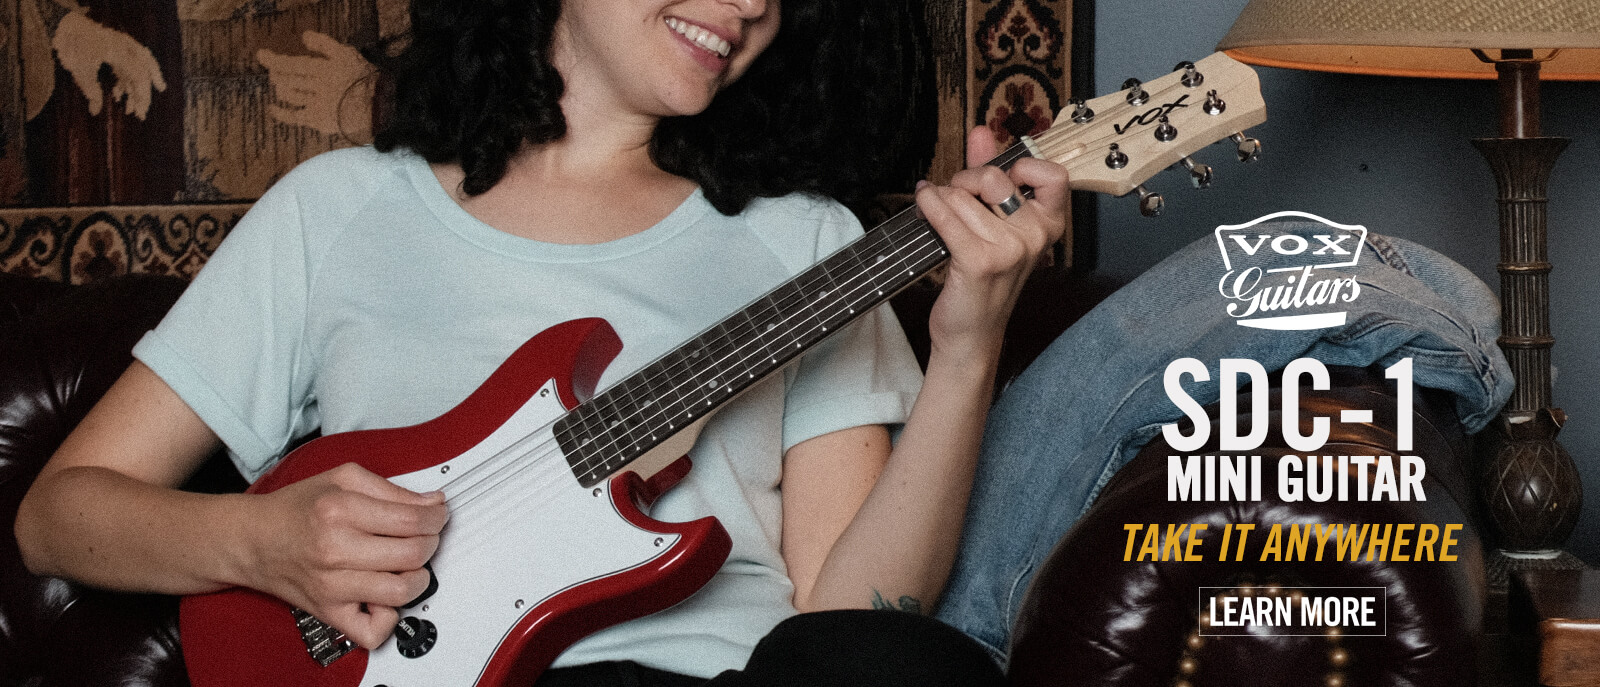 seated female musician playing red VOX SDC-1 Mini Guitar